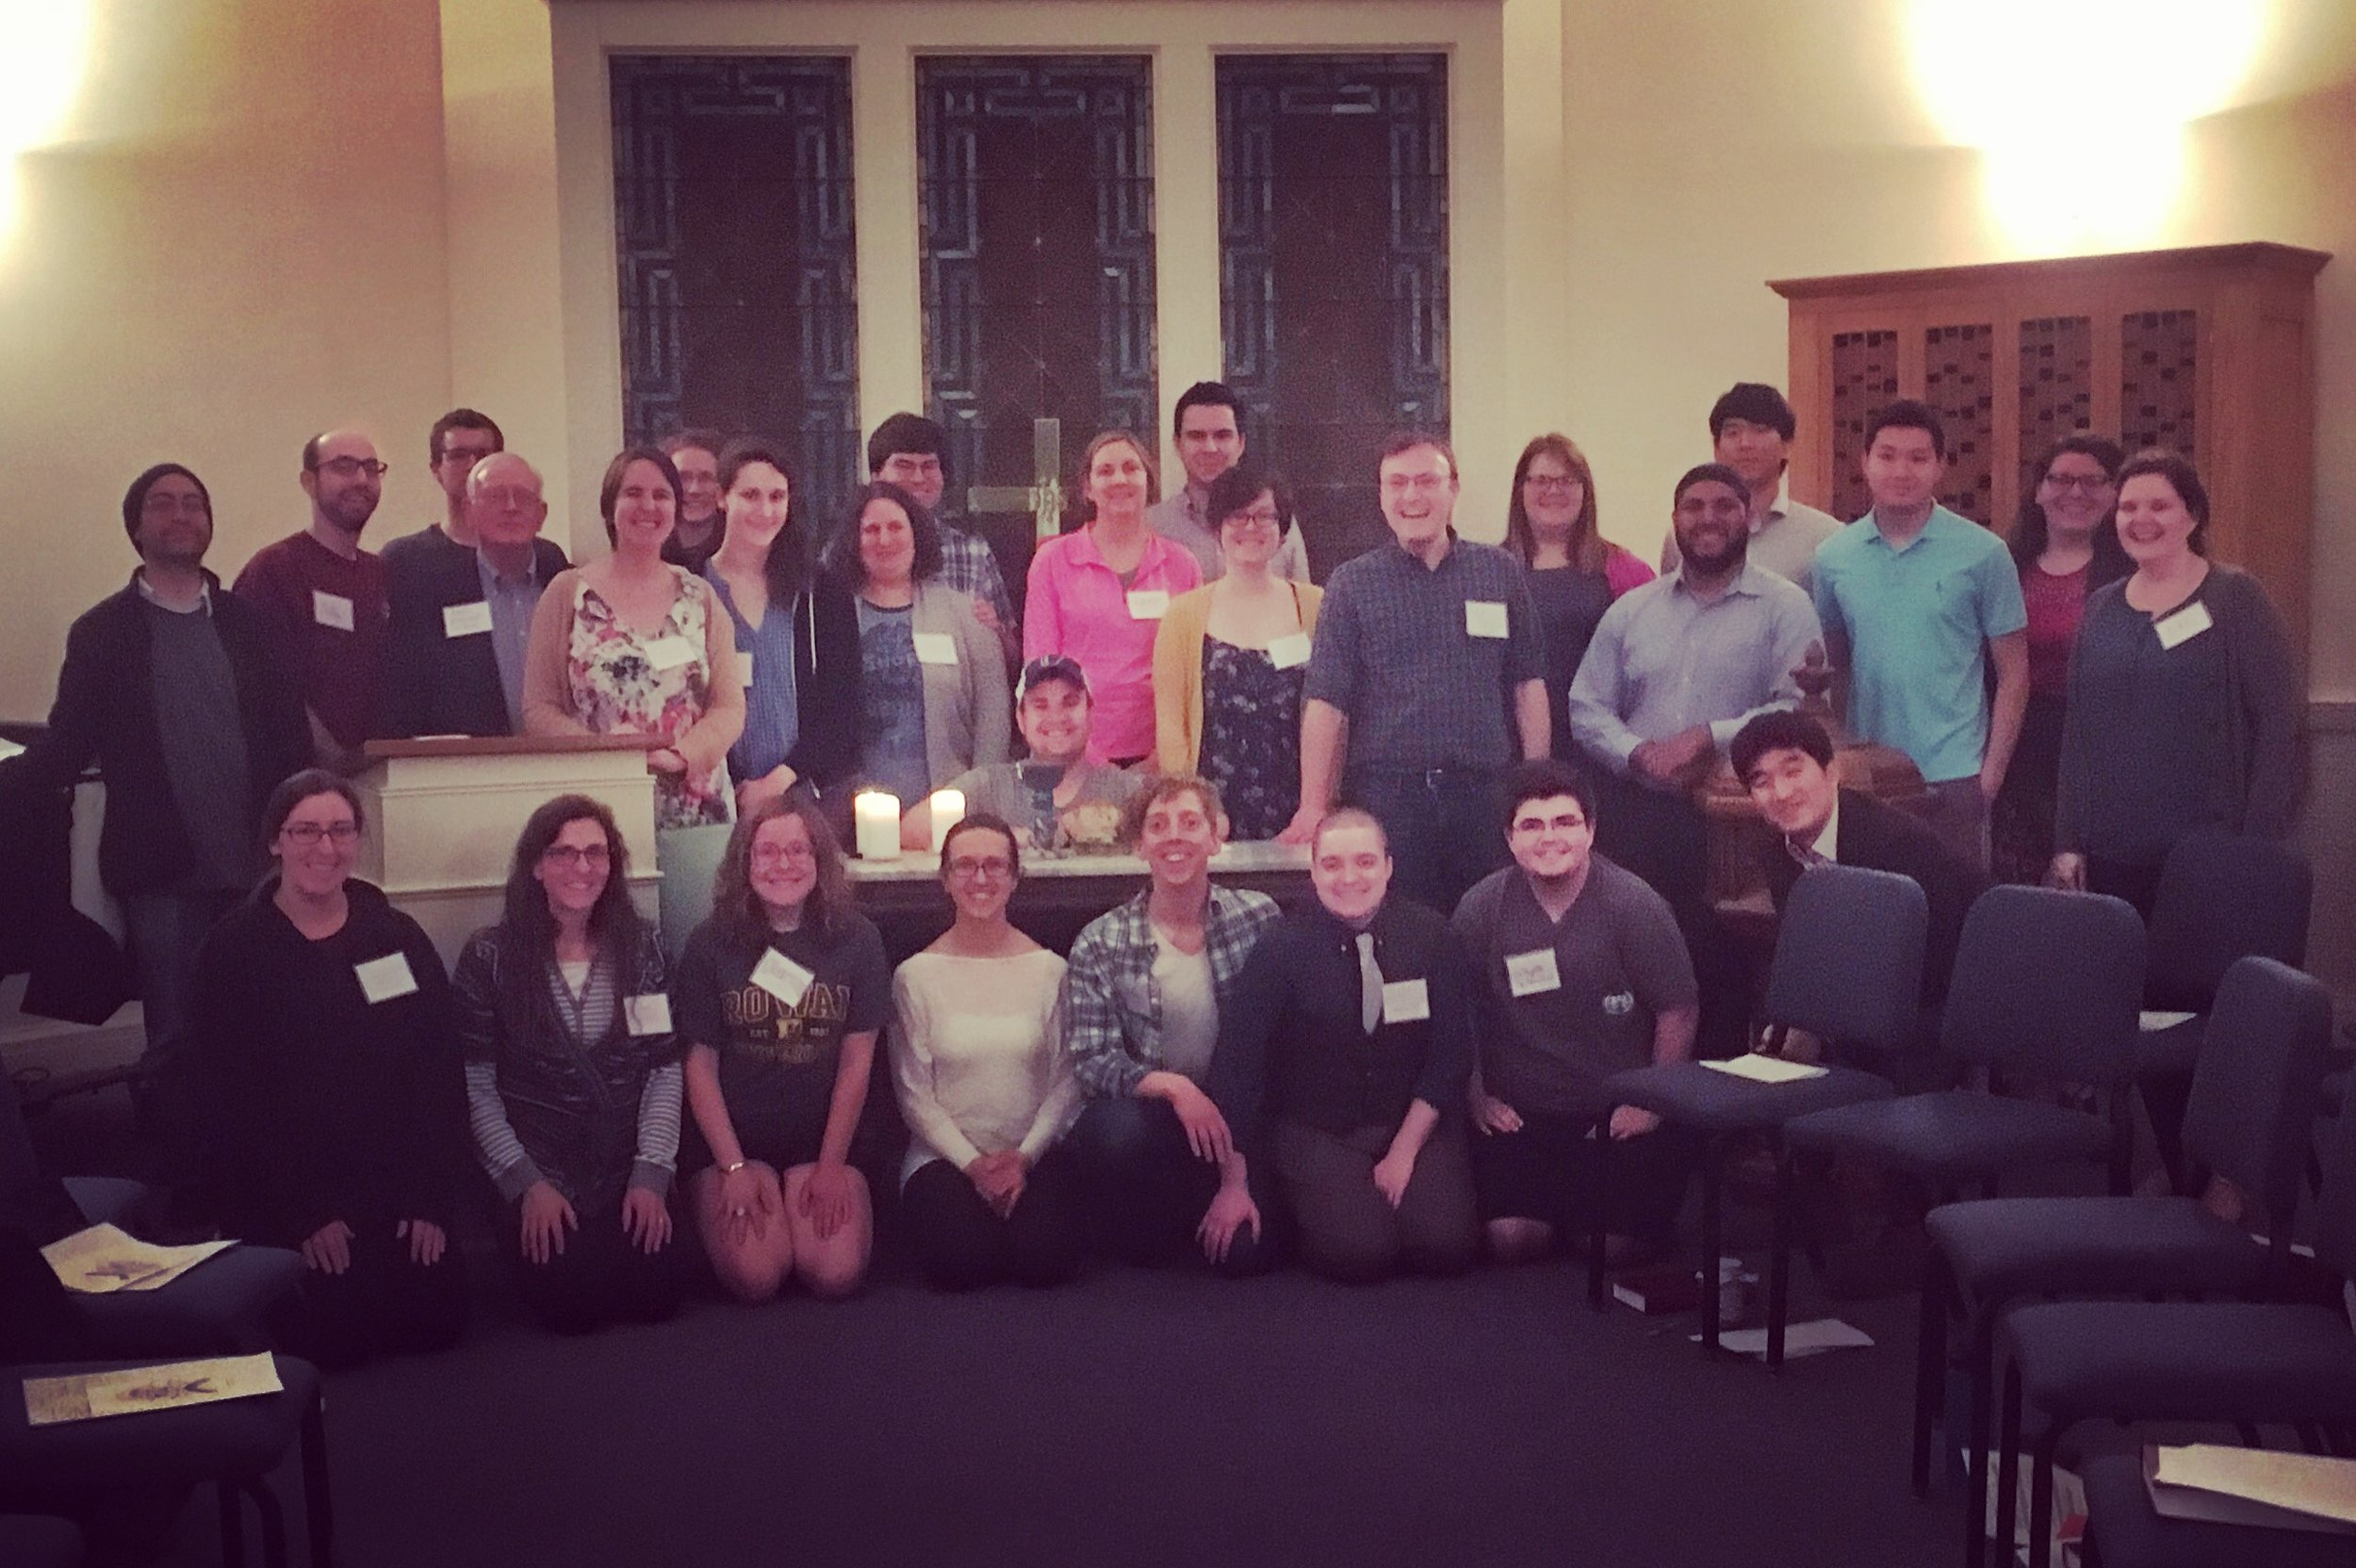 Blessings to our Graduates - The final Breaking Bread worship service of the academic year included a blessing of 8 graduates! We were thrilled to mark this milestone and pray for God's continued faithfulness. We are excited to see what is next for the 2 Princeton University undergraduates, 3 Princeton Theological Seminary Master of Divinity graduates, 2 Westminster Choir College graduates, and 1 Rowan University graduate.